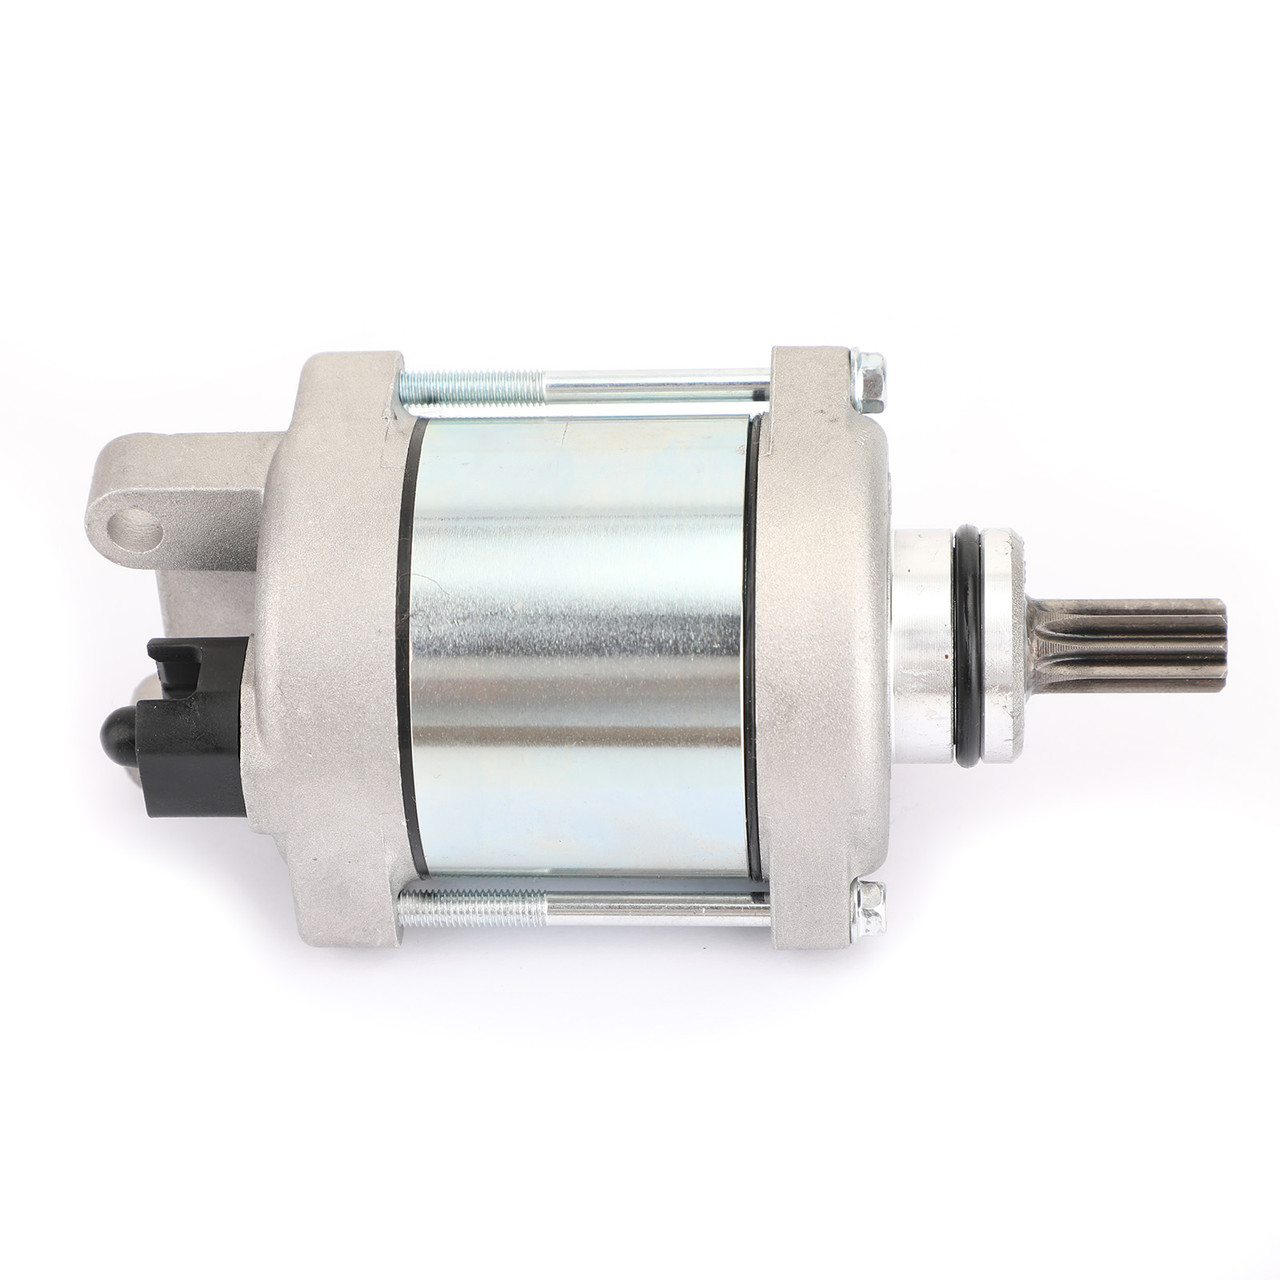 STARTER Motor Engine Starting 9-Spline Fit For SX-F 450 SMR 450 13-14 XC-W 500 EXC 500 Six Days 12-16